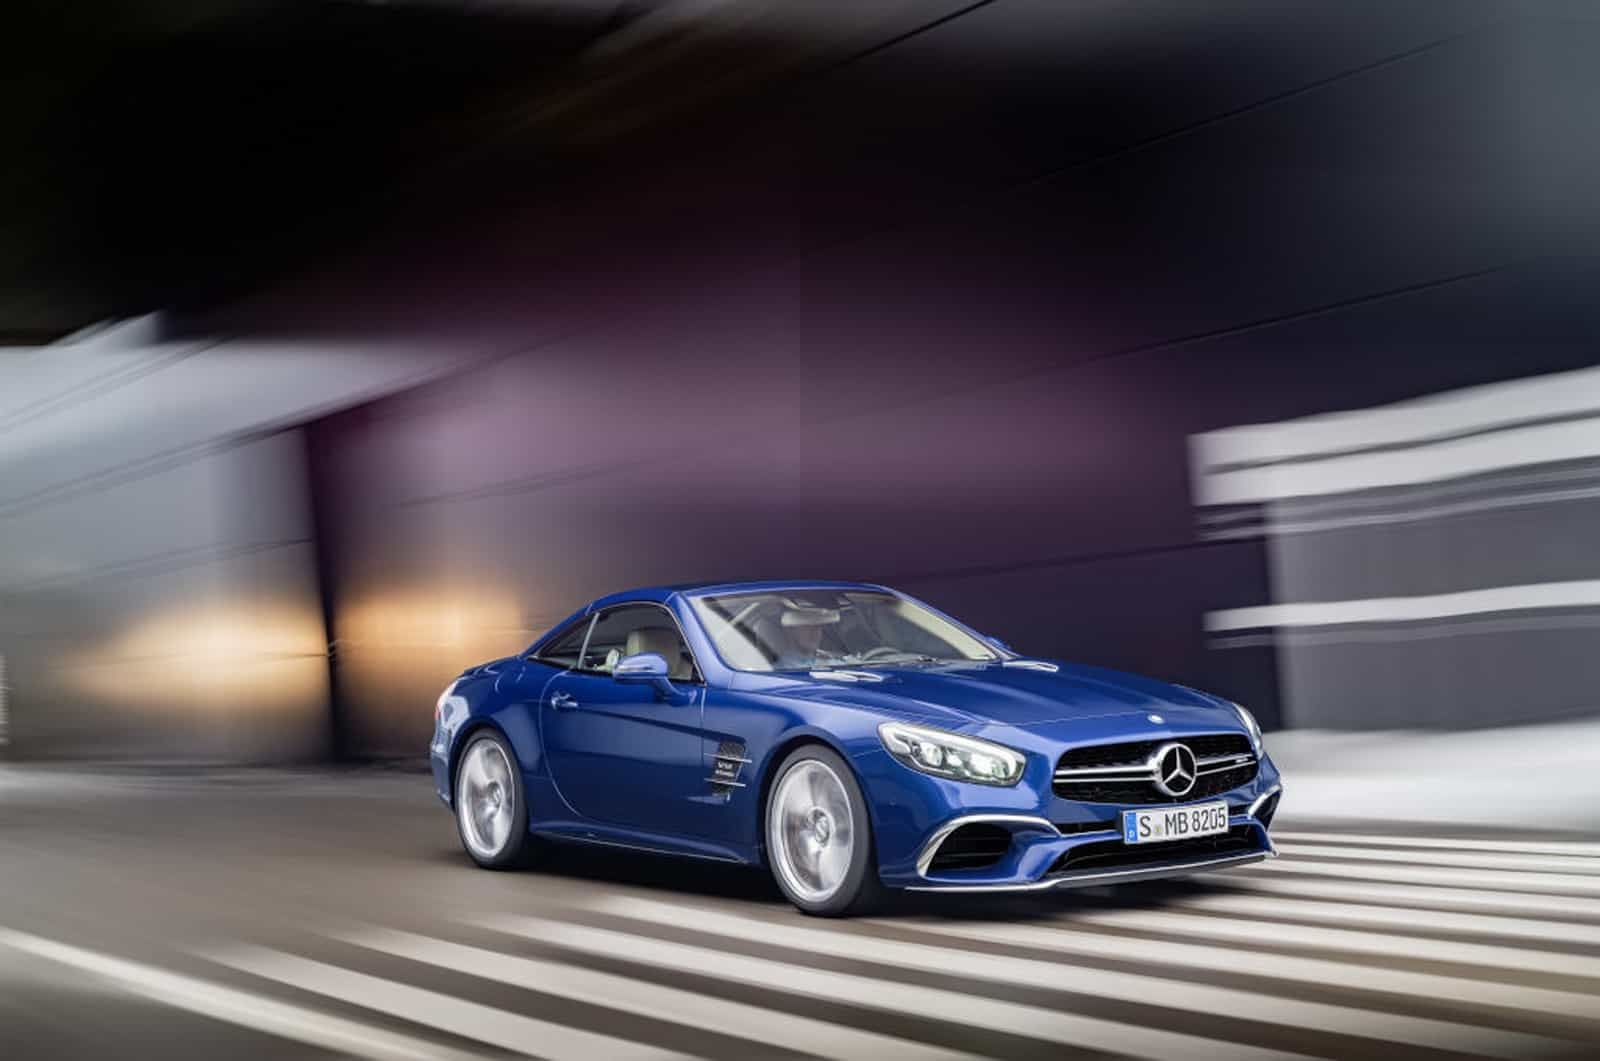 Mercedes-AMG SL 65, Brilliantblau Mercedes-AMG SL 65, brilliant blue